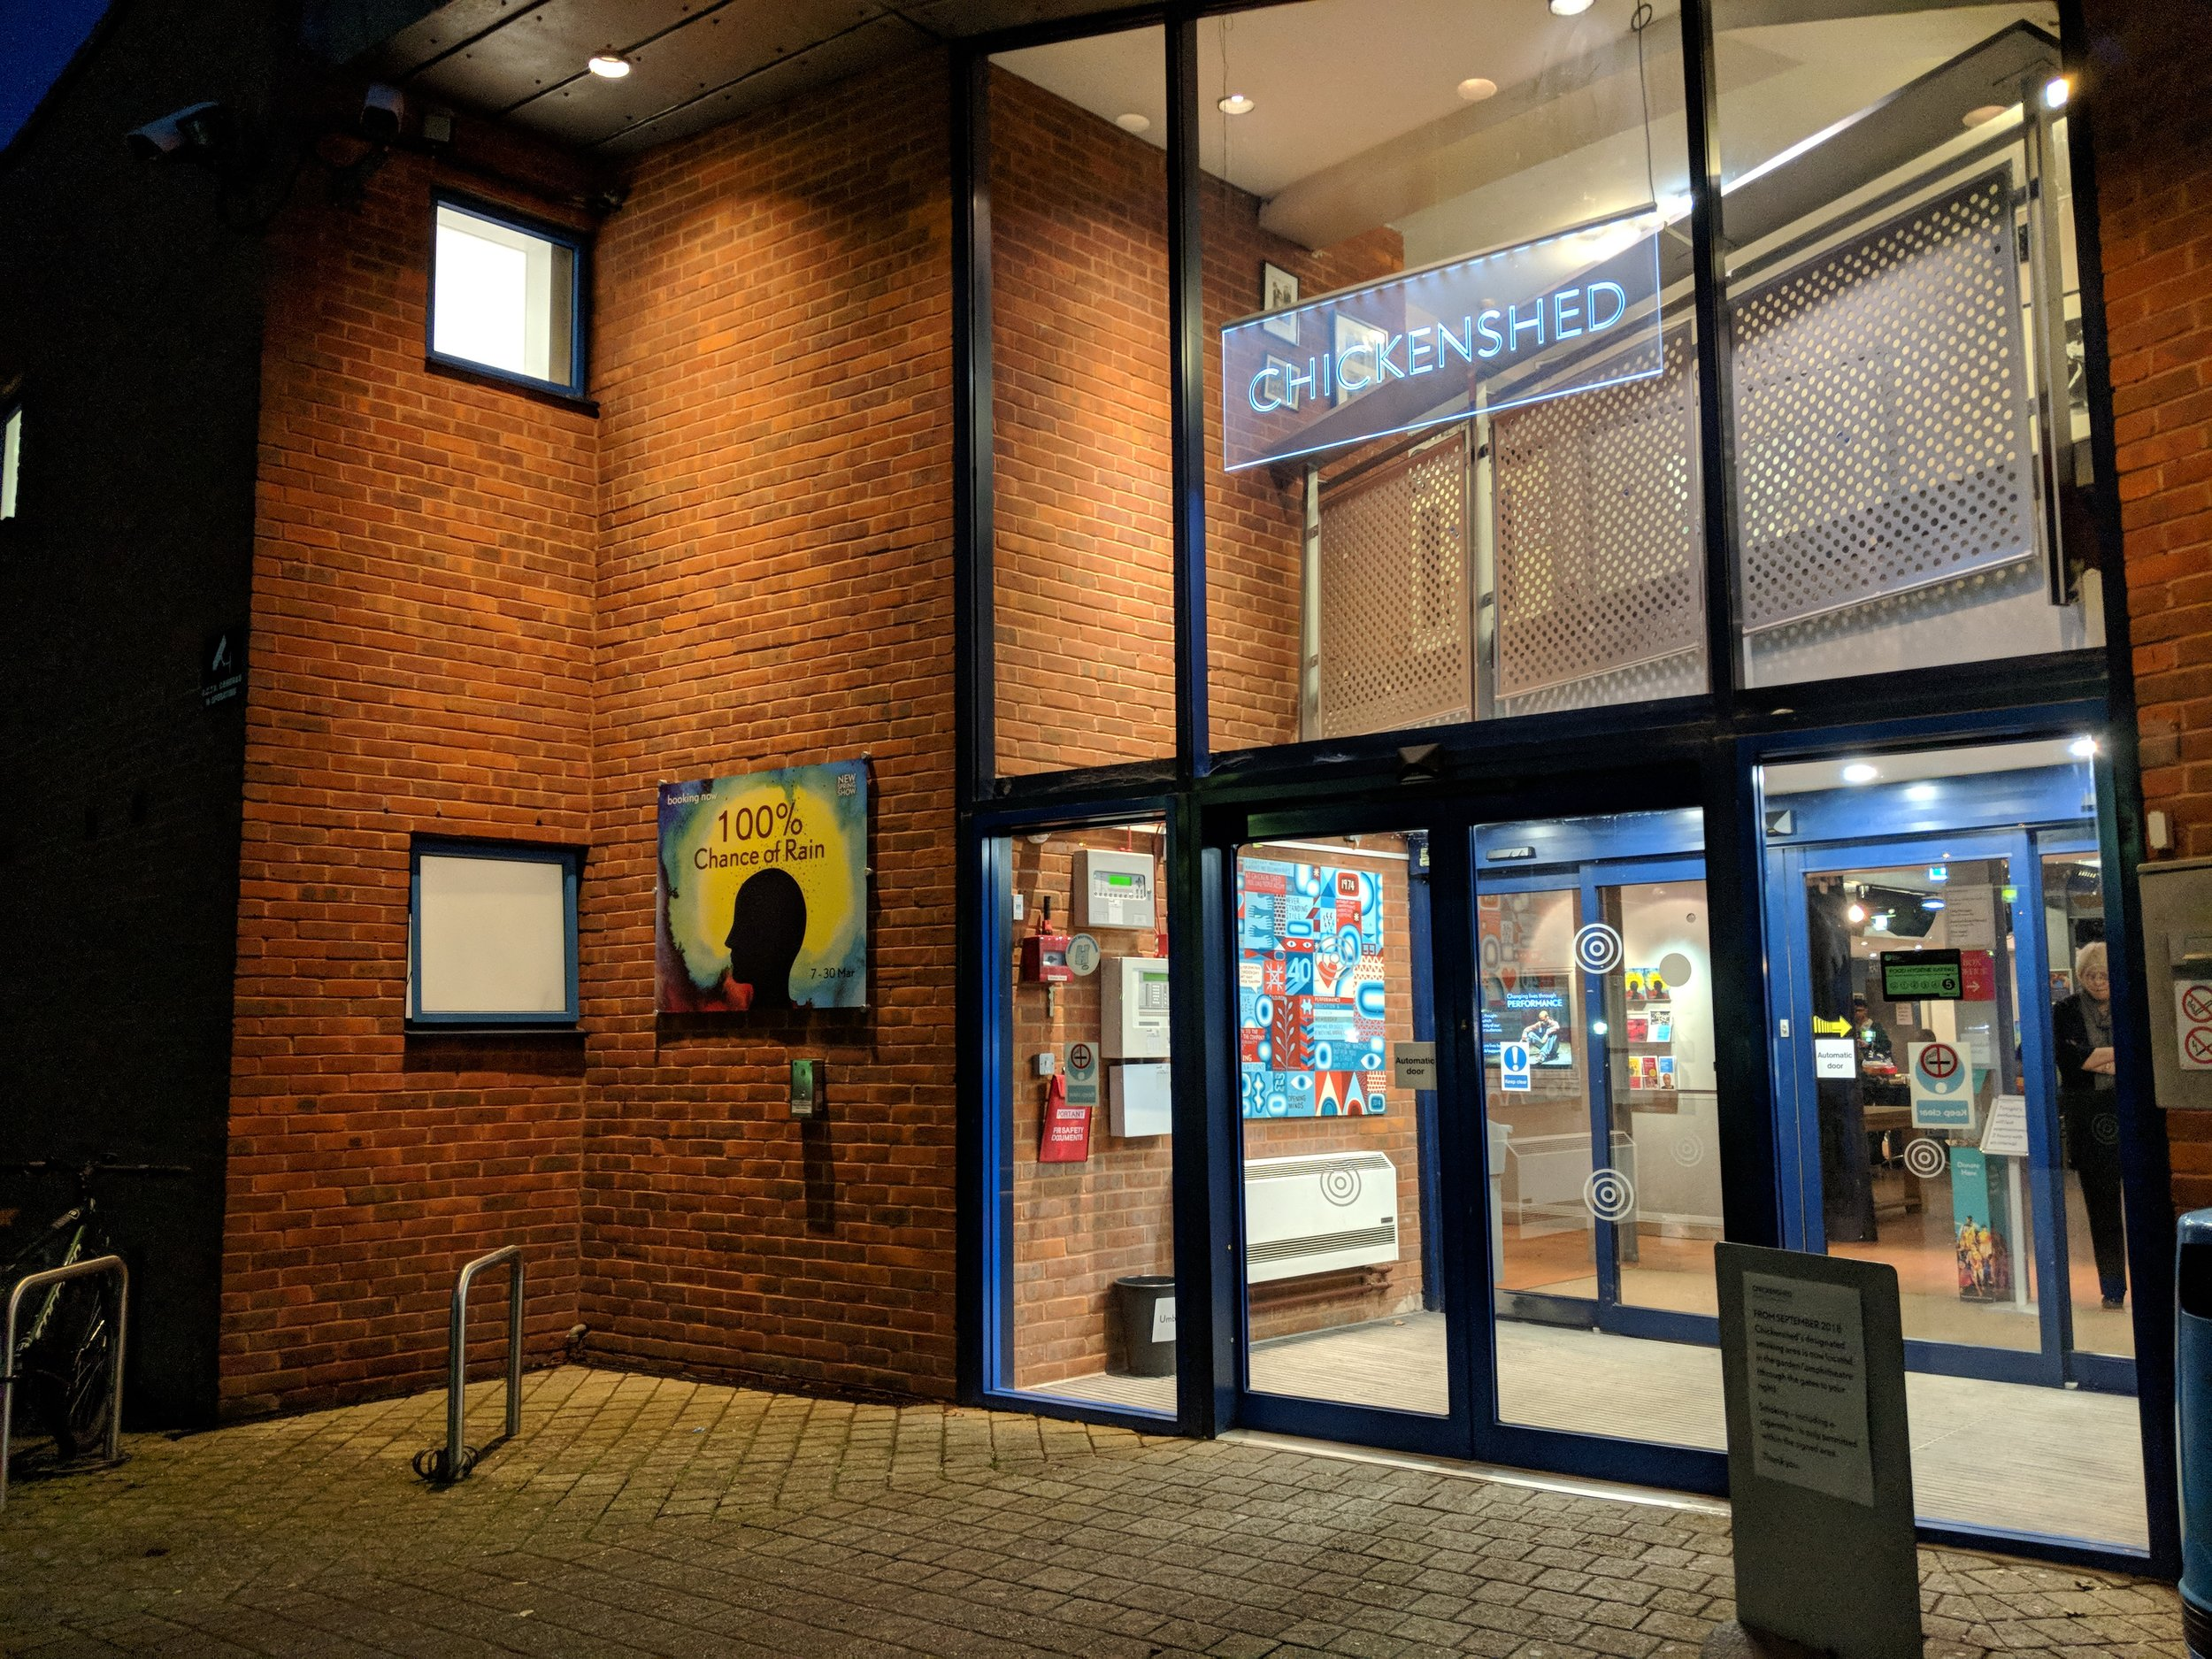 Chickenshed Theatre(Raynes Theatre) - visited 12/03/2019